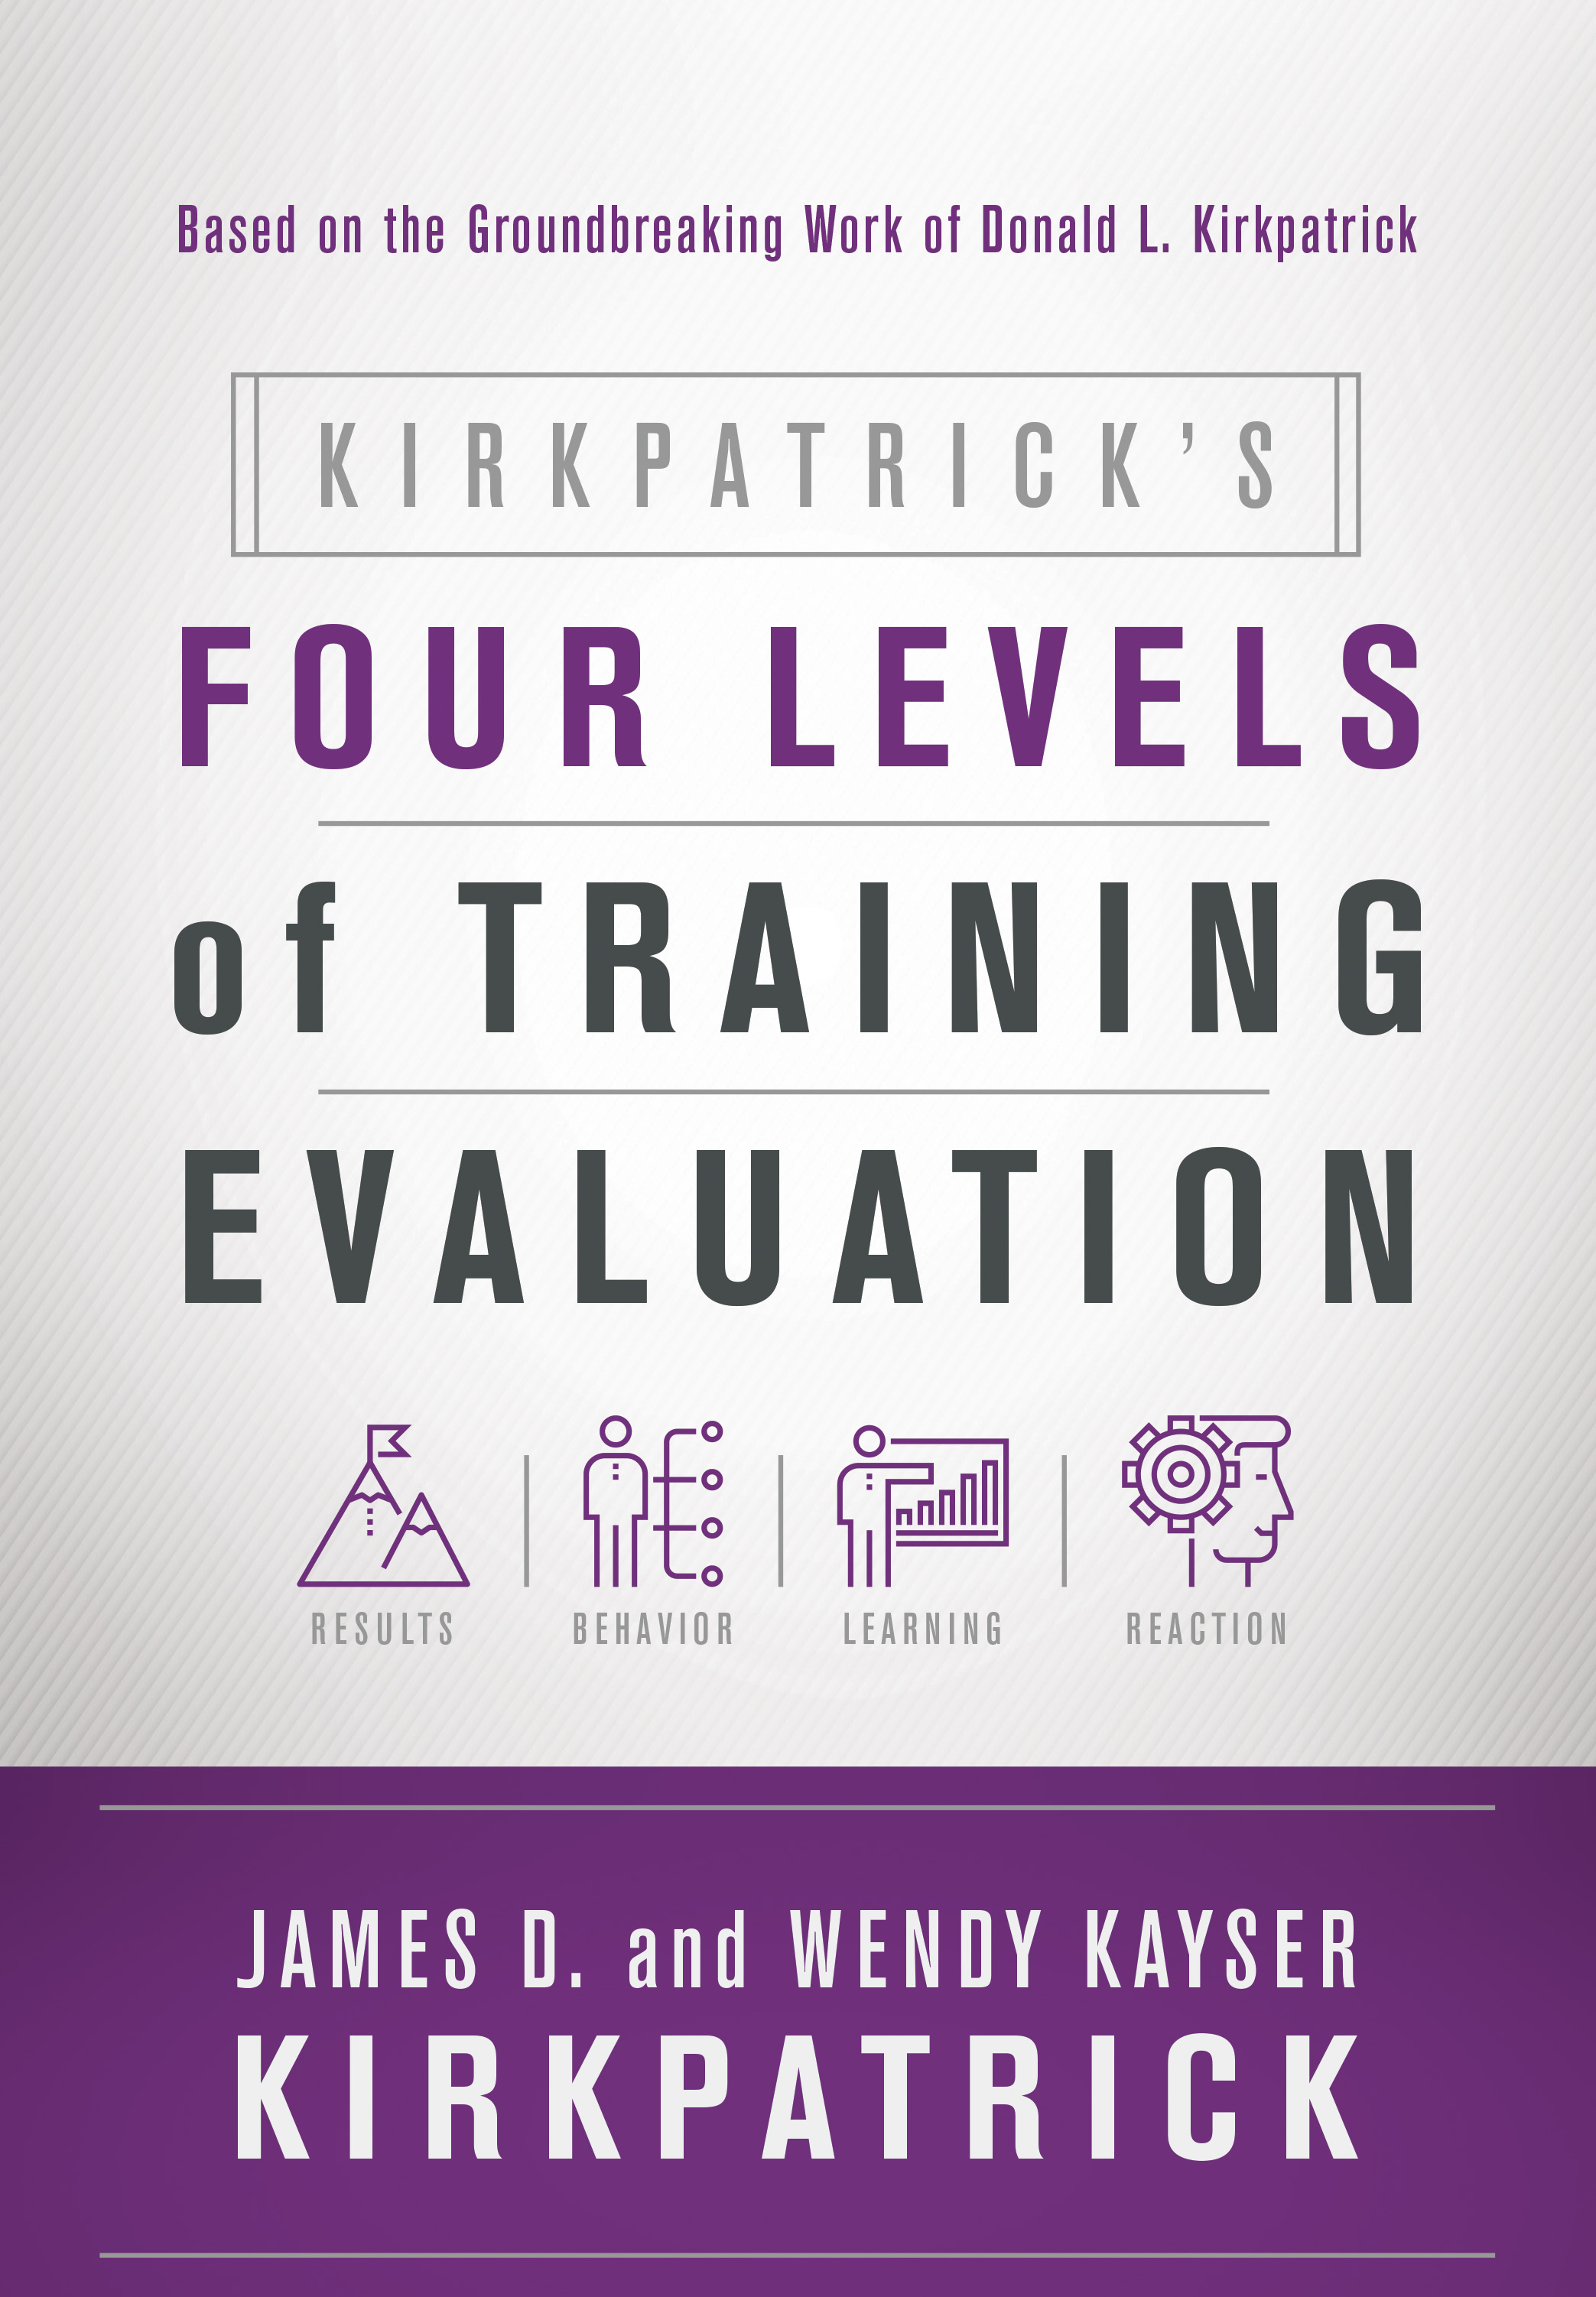 The 4 Levels of Training Evaluation